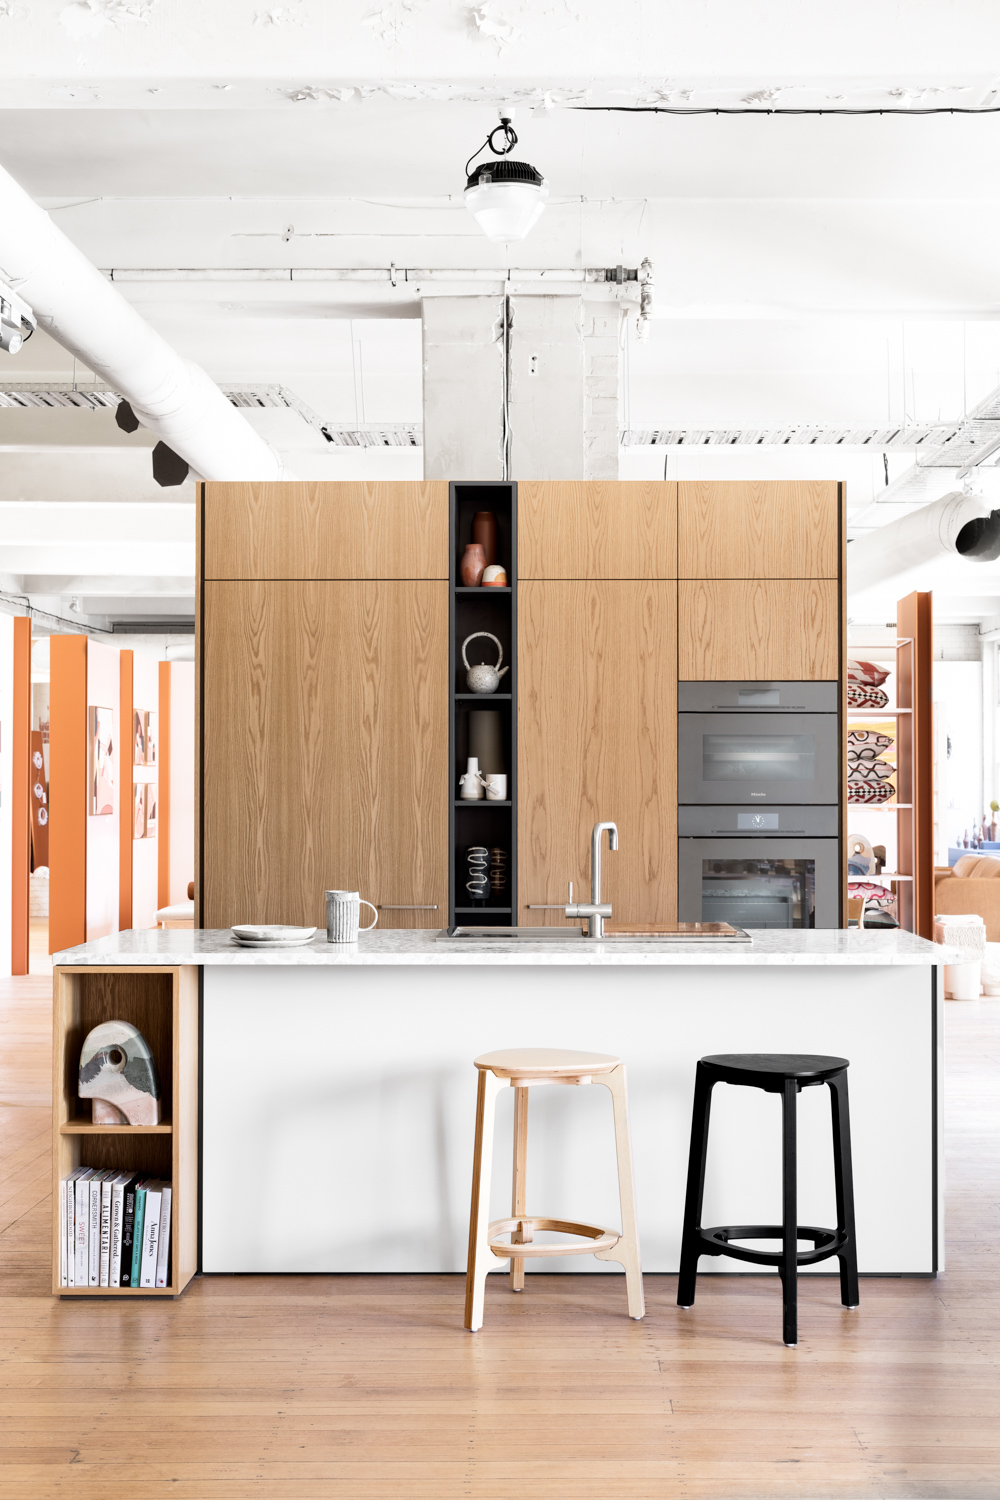 Kitchen & Sink by Cantilever, Tap by Sussex Taps, Terrazzo benchtop from Signorino | Photo: Martina Gemmola